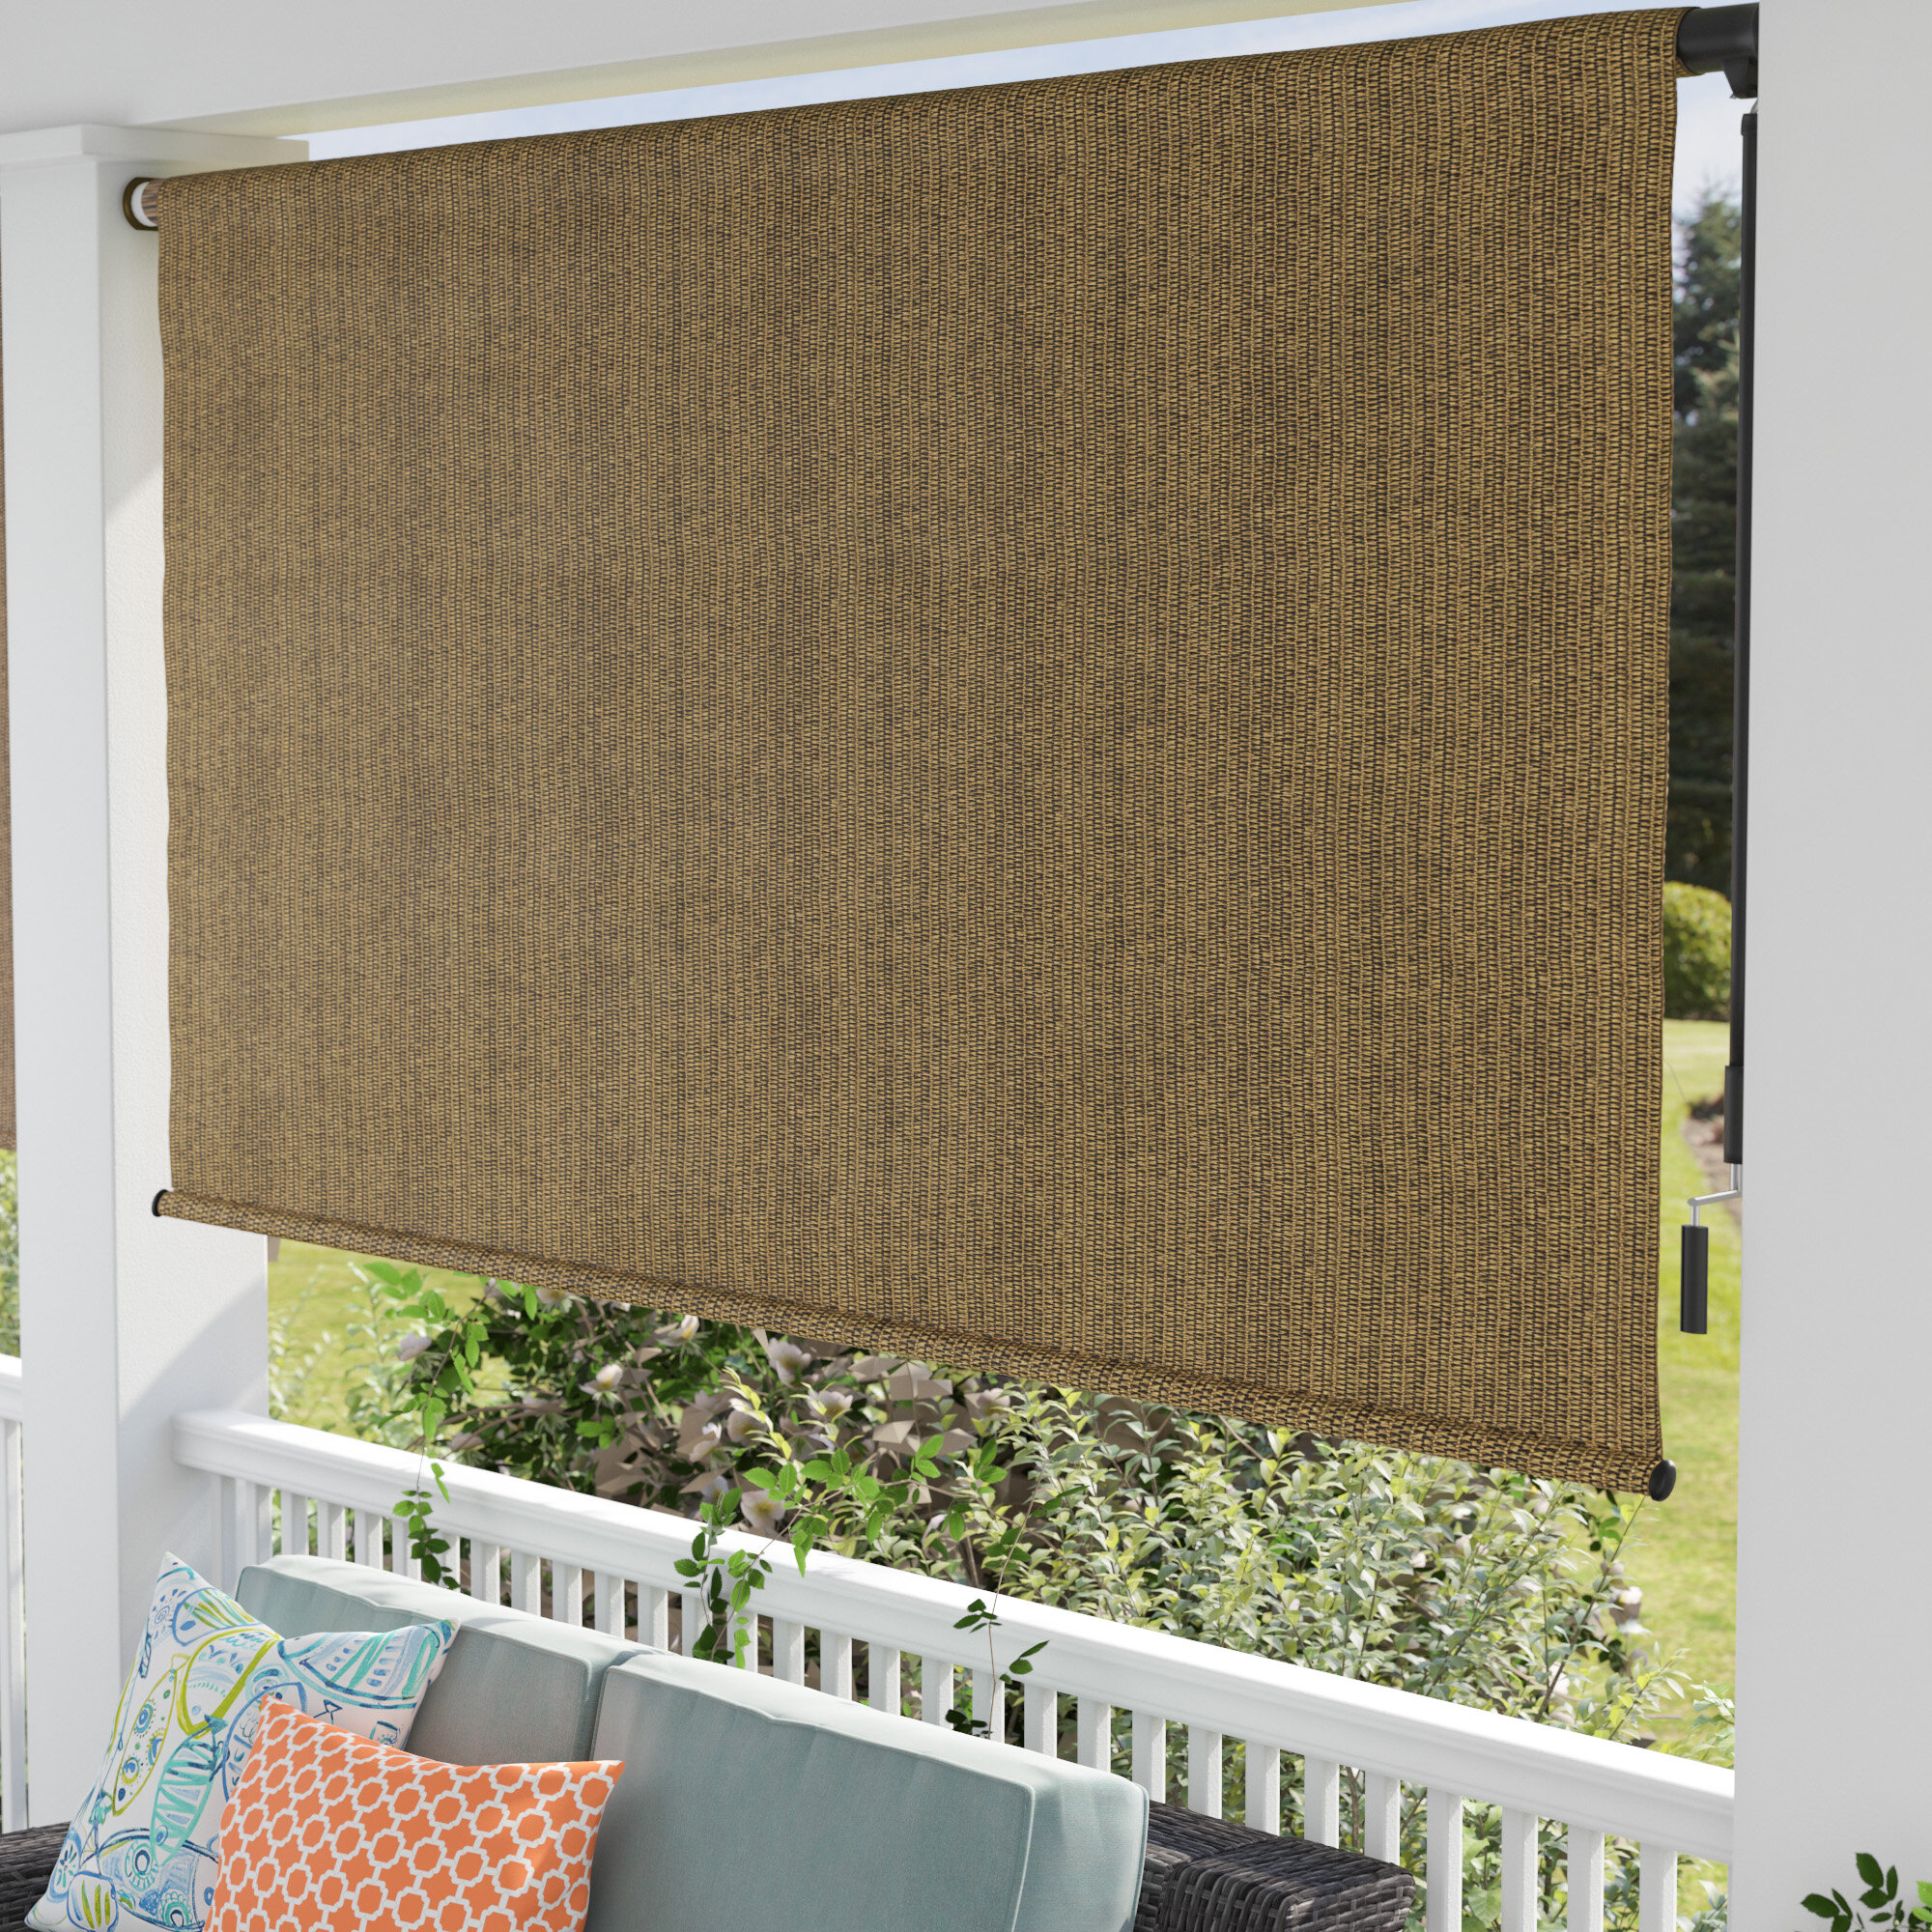 window shades rolling blinds discount sun cheap waterproof outdoor up of motorized screens patio roller shade clear for size outside costco patios full roll